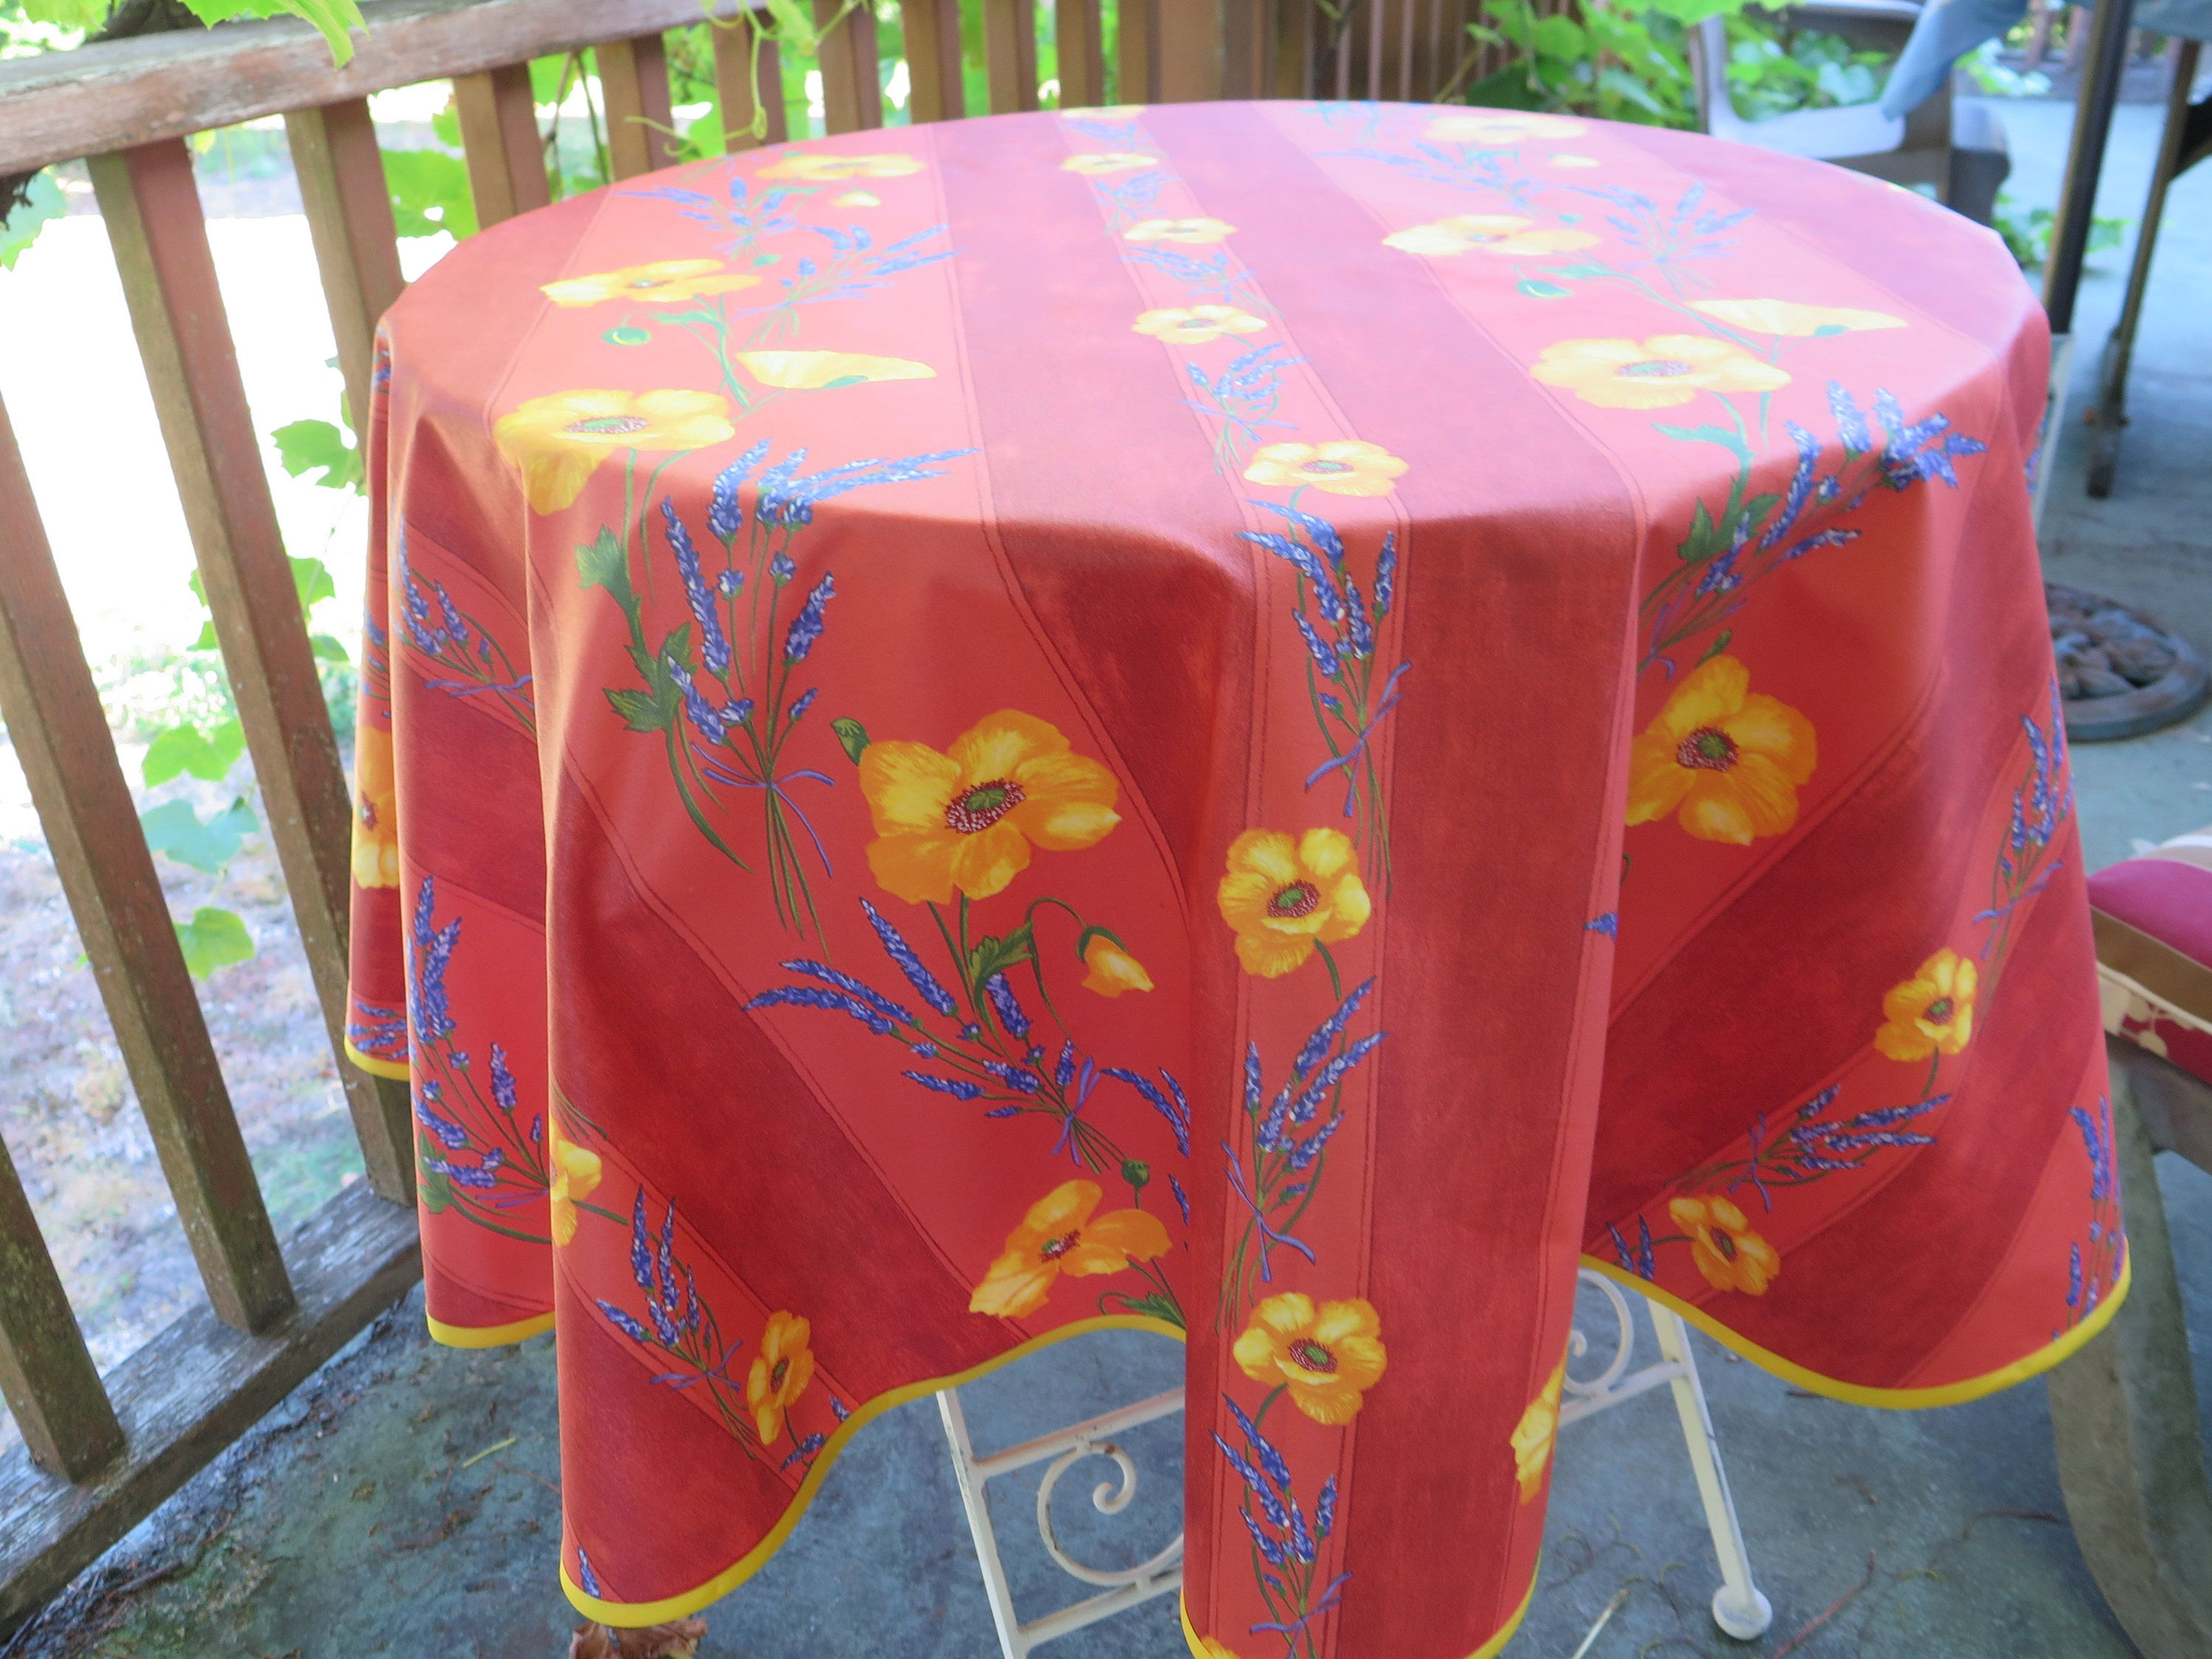 Round Tablecloth French Cotton Coated Oilcloth 40 To 60 Diameter Fabric From Provence France Poppies In Terra Cott Oil Cloth Round Tablecloth Table Cloth